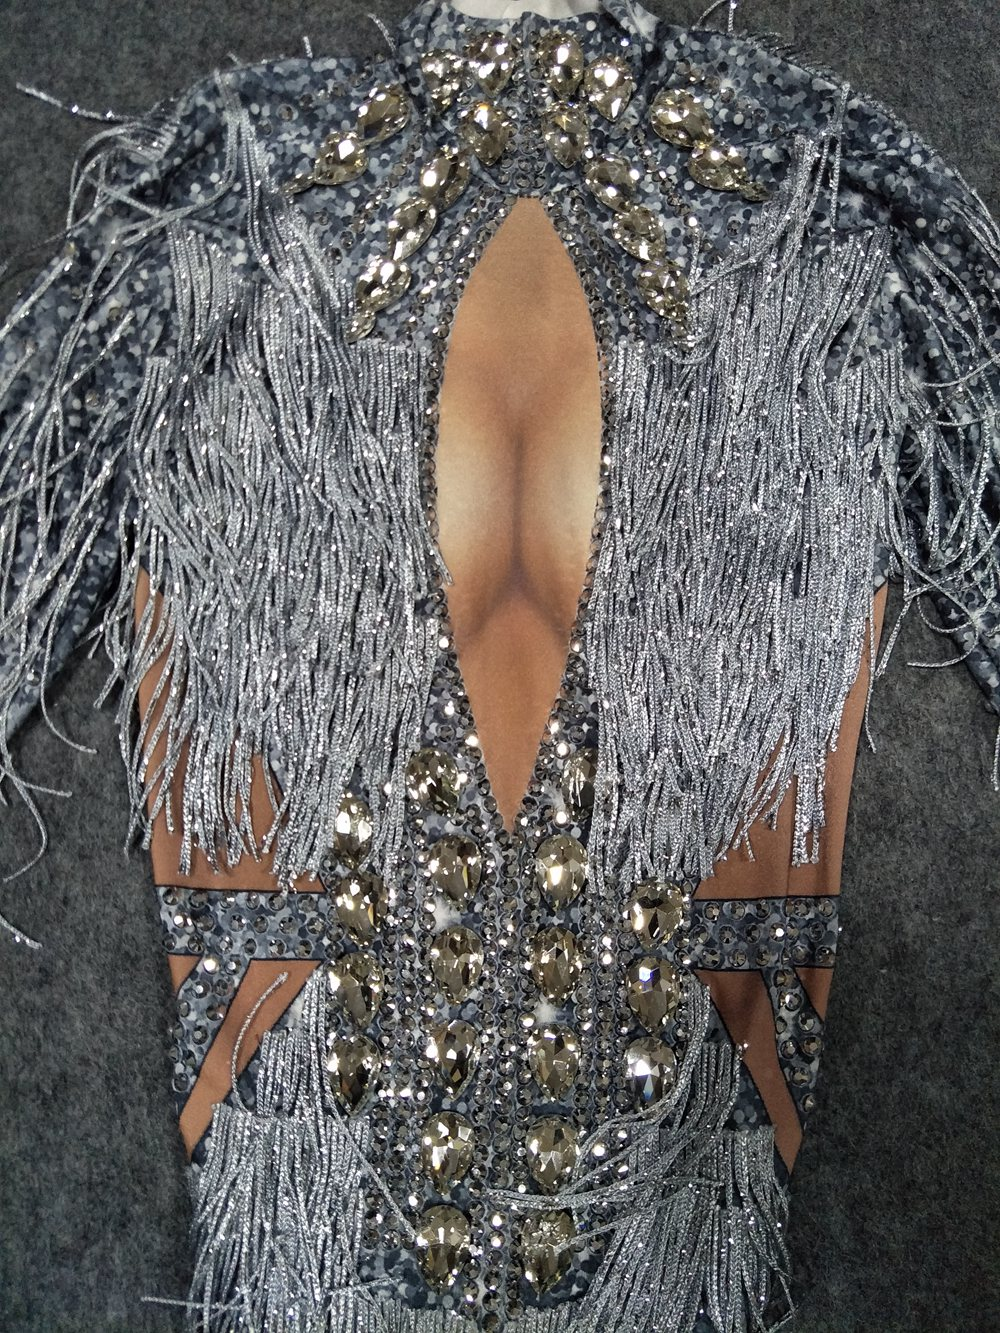 Sparkly Rhinestone Fringes Jumpsuit Dance Costume Big Crystals Bodysuit Tassel Bodysuit Party Stage Wear Dance Show Sexy Outfit